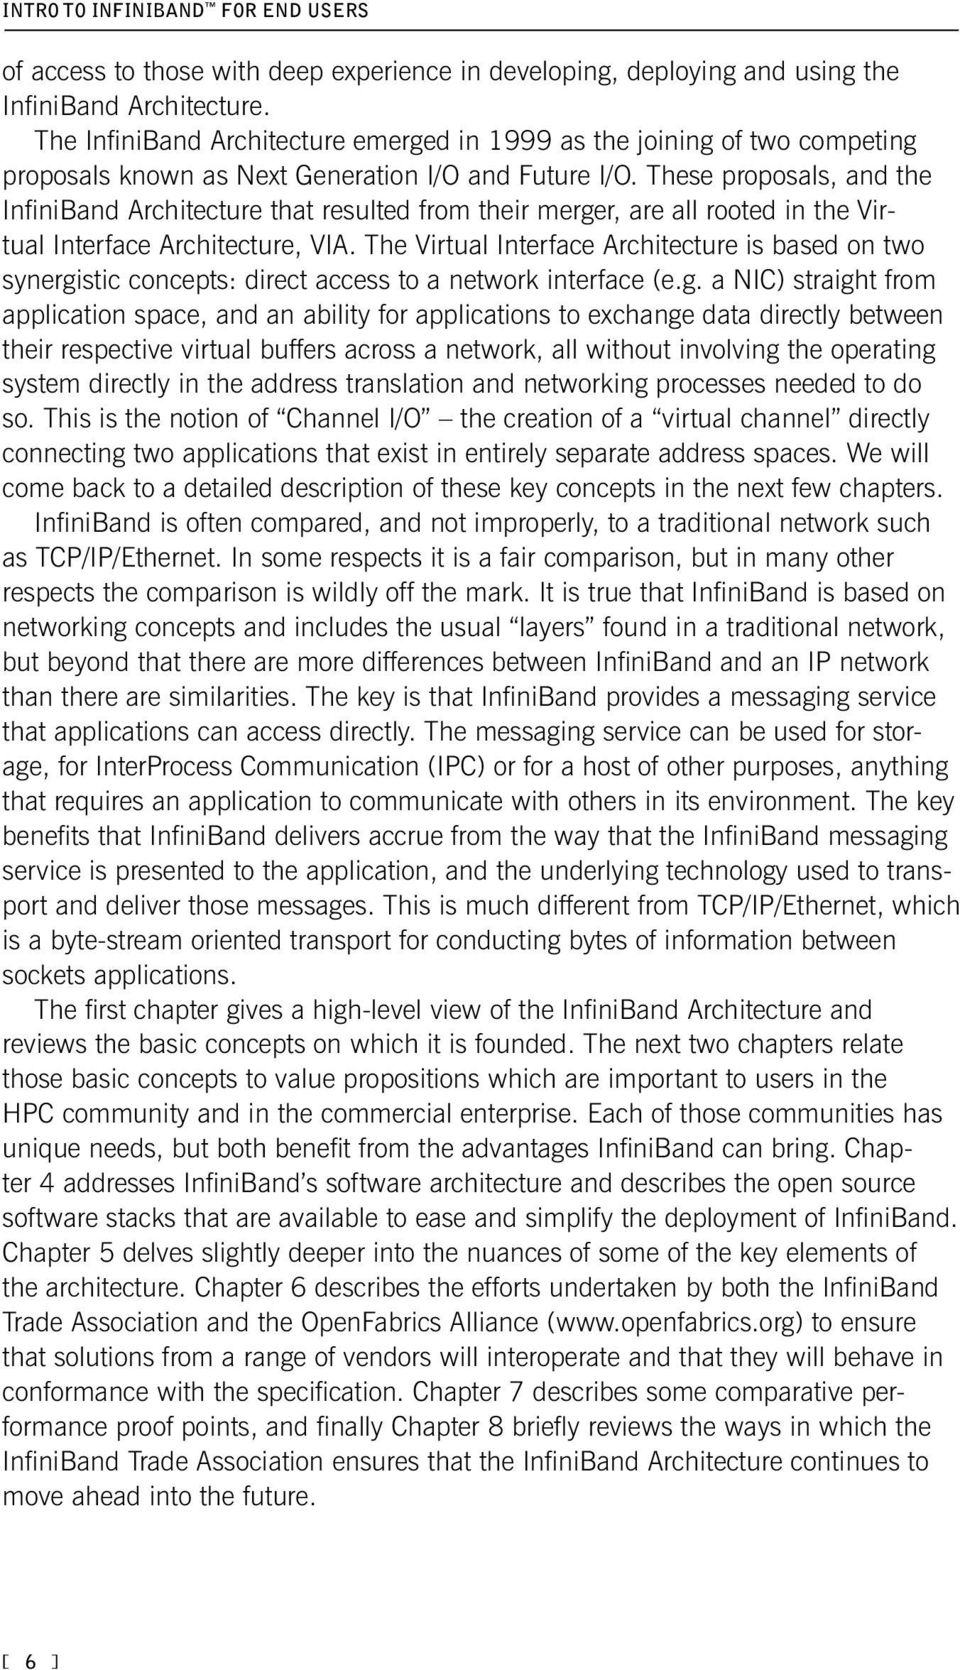 These proposals, and the InfiniBand Architecture that resulted from their merger, are all rooted in the Virtual Interface Architecture, VIA.